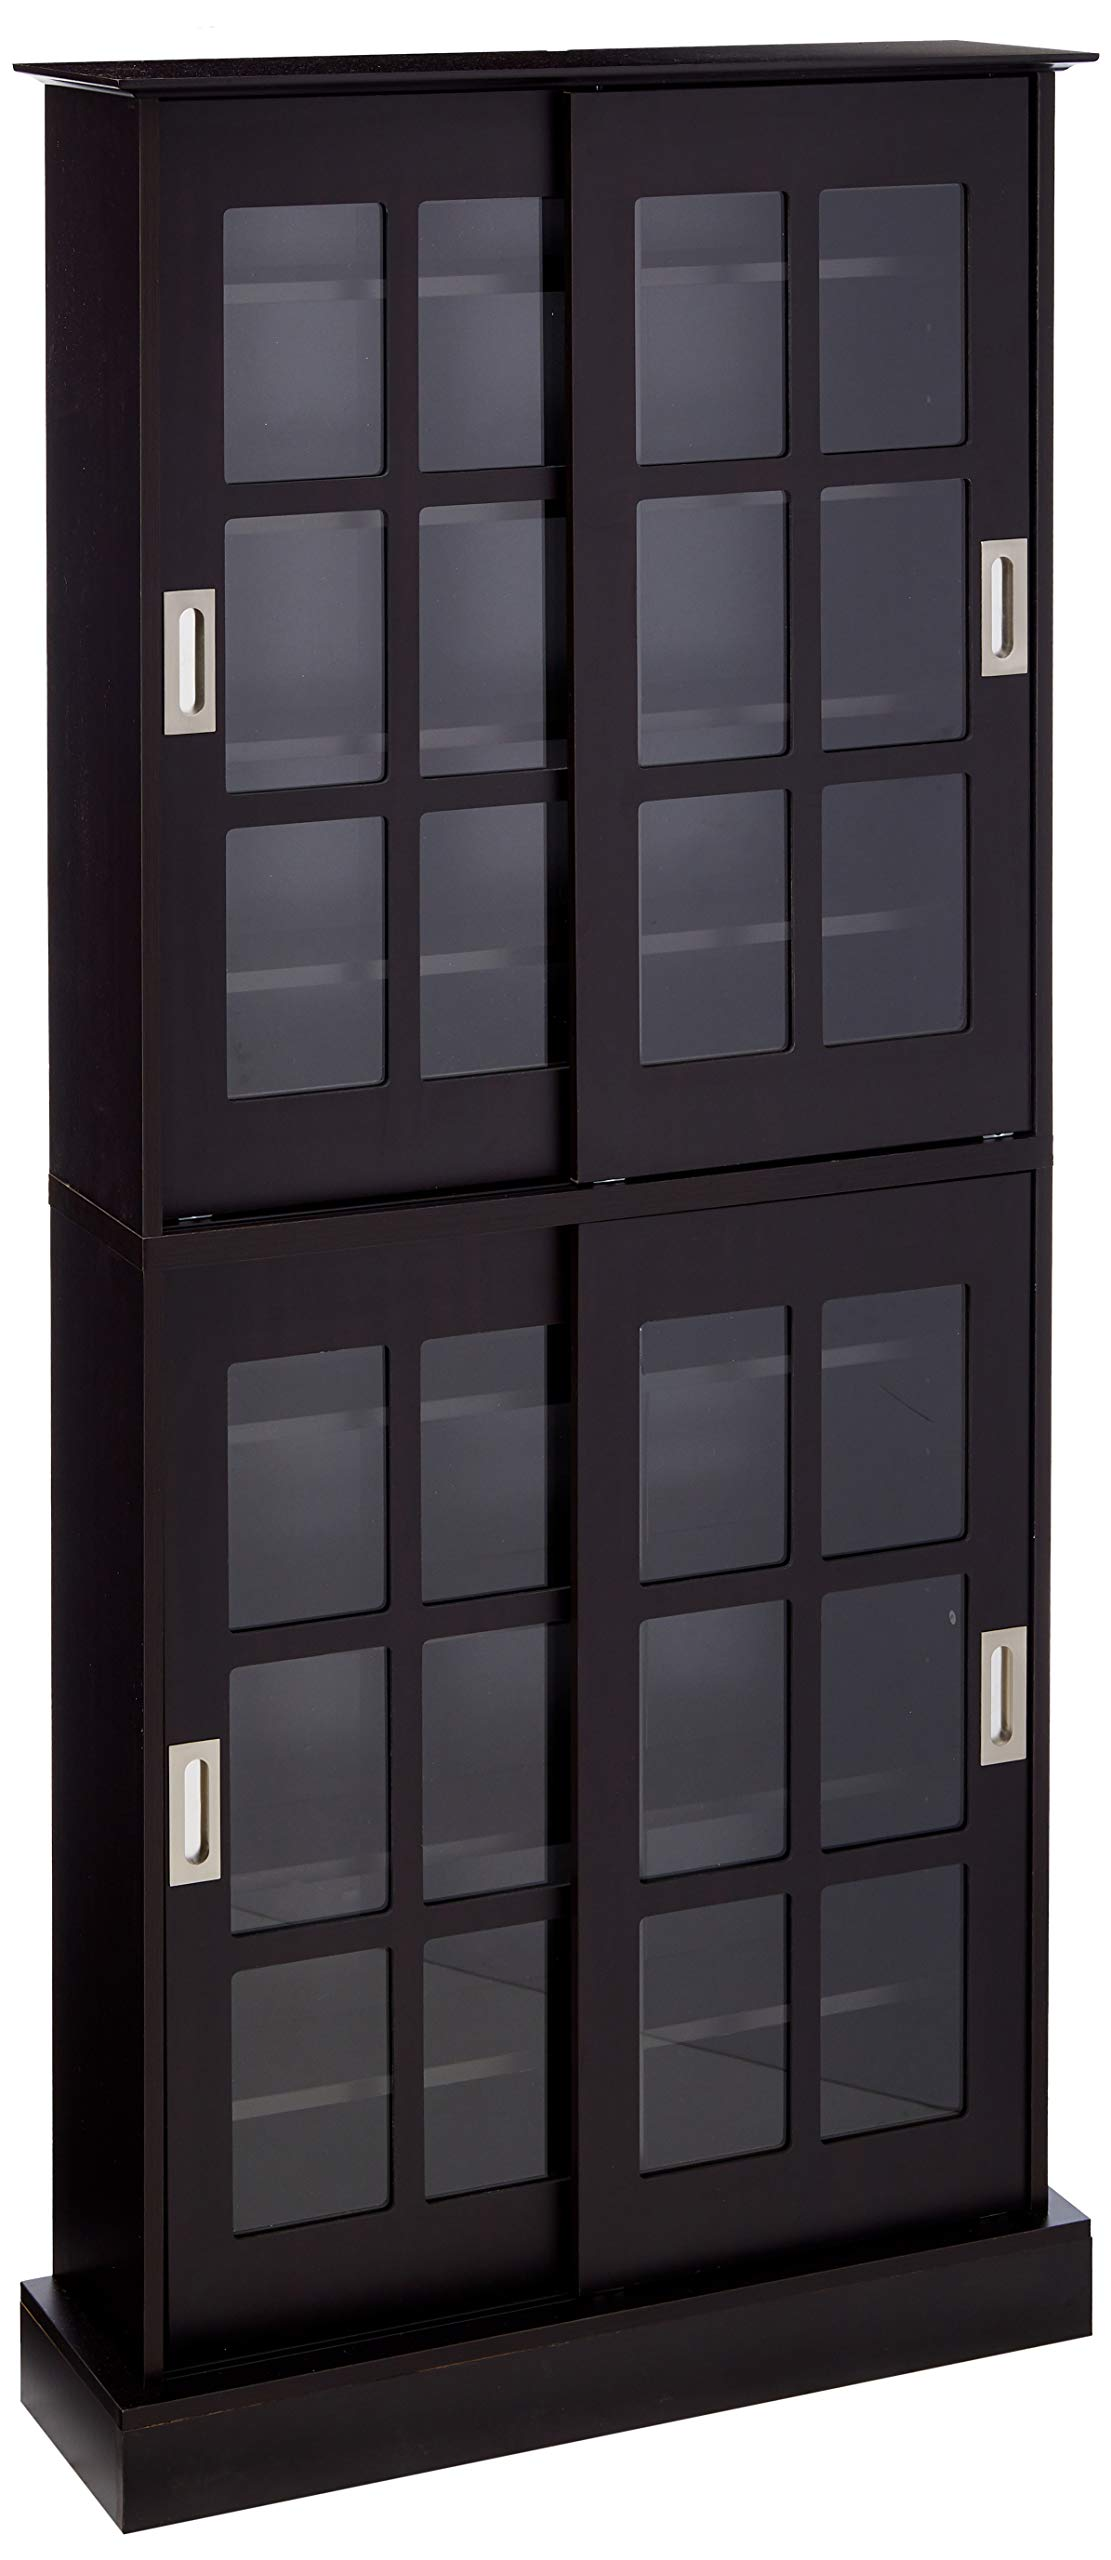 Atlantic Windowpane Multimedia-Storage Cabinet - Tempered Glass Pane Style, Sliding Doors, Stores 720 CDs, 288 DVDs, 144 CDs or 348 Blu-Rays, Adjustable Shelves, 71.5 X 32 X 9.5 inches PN in Espresso by Atlantic